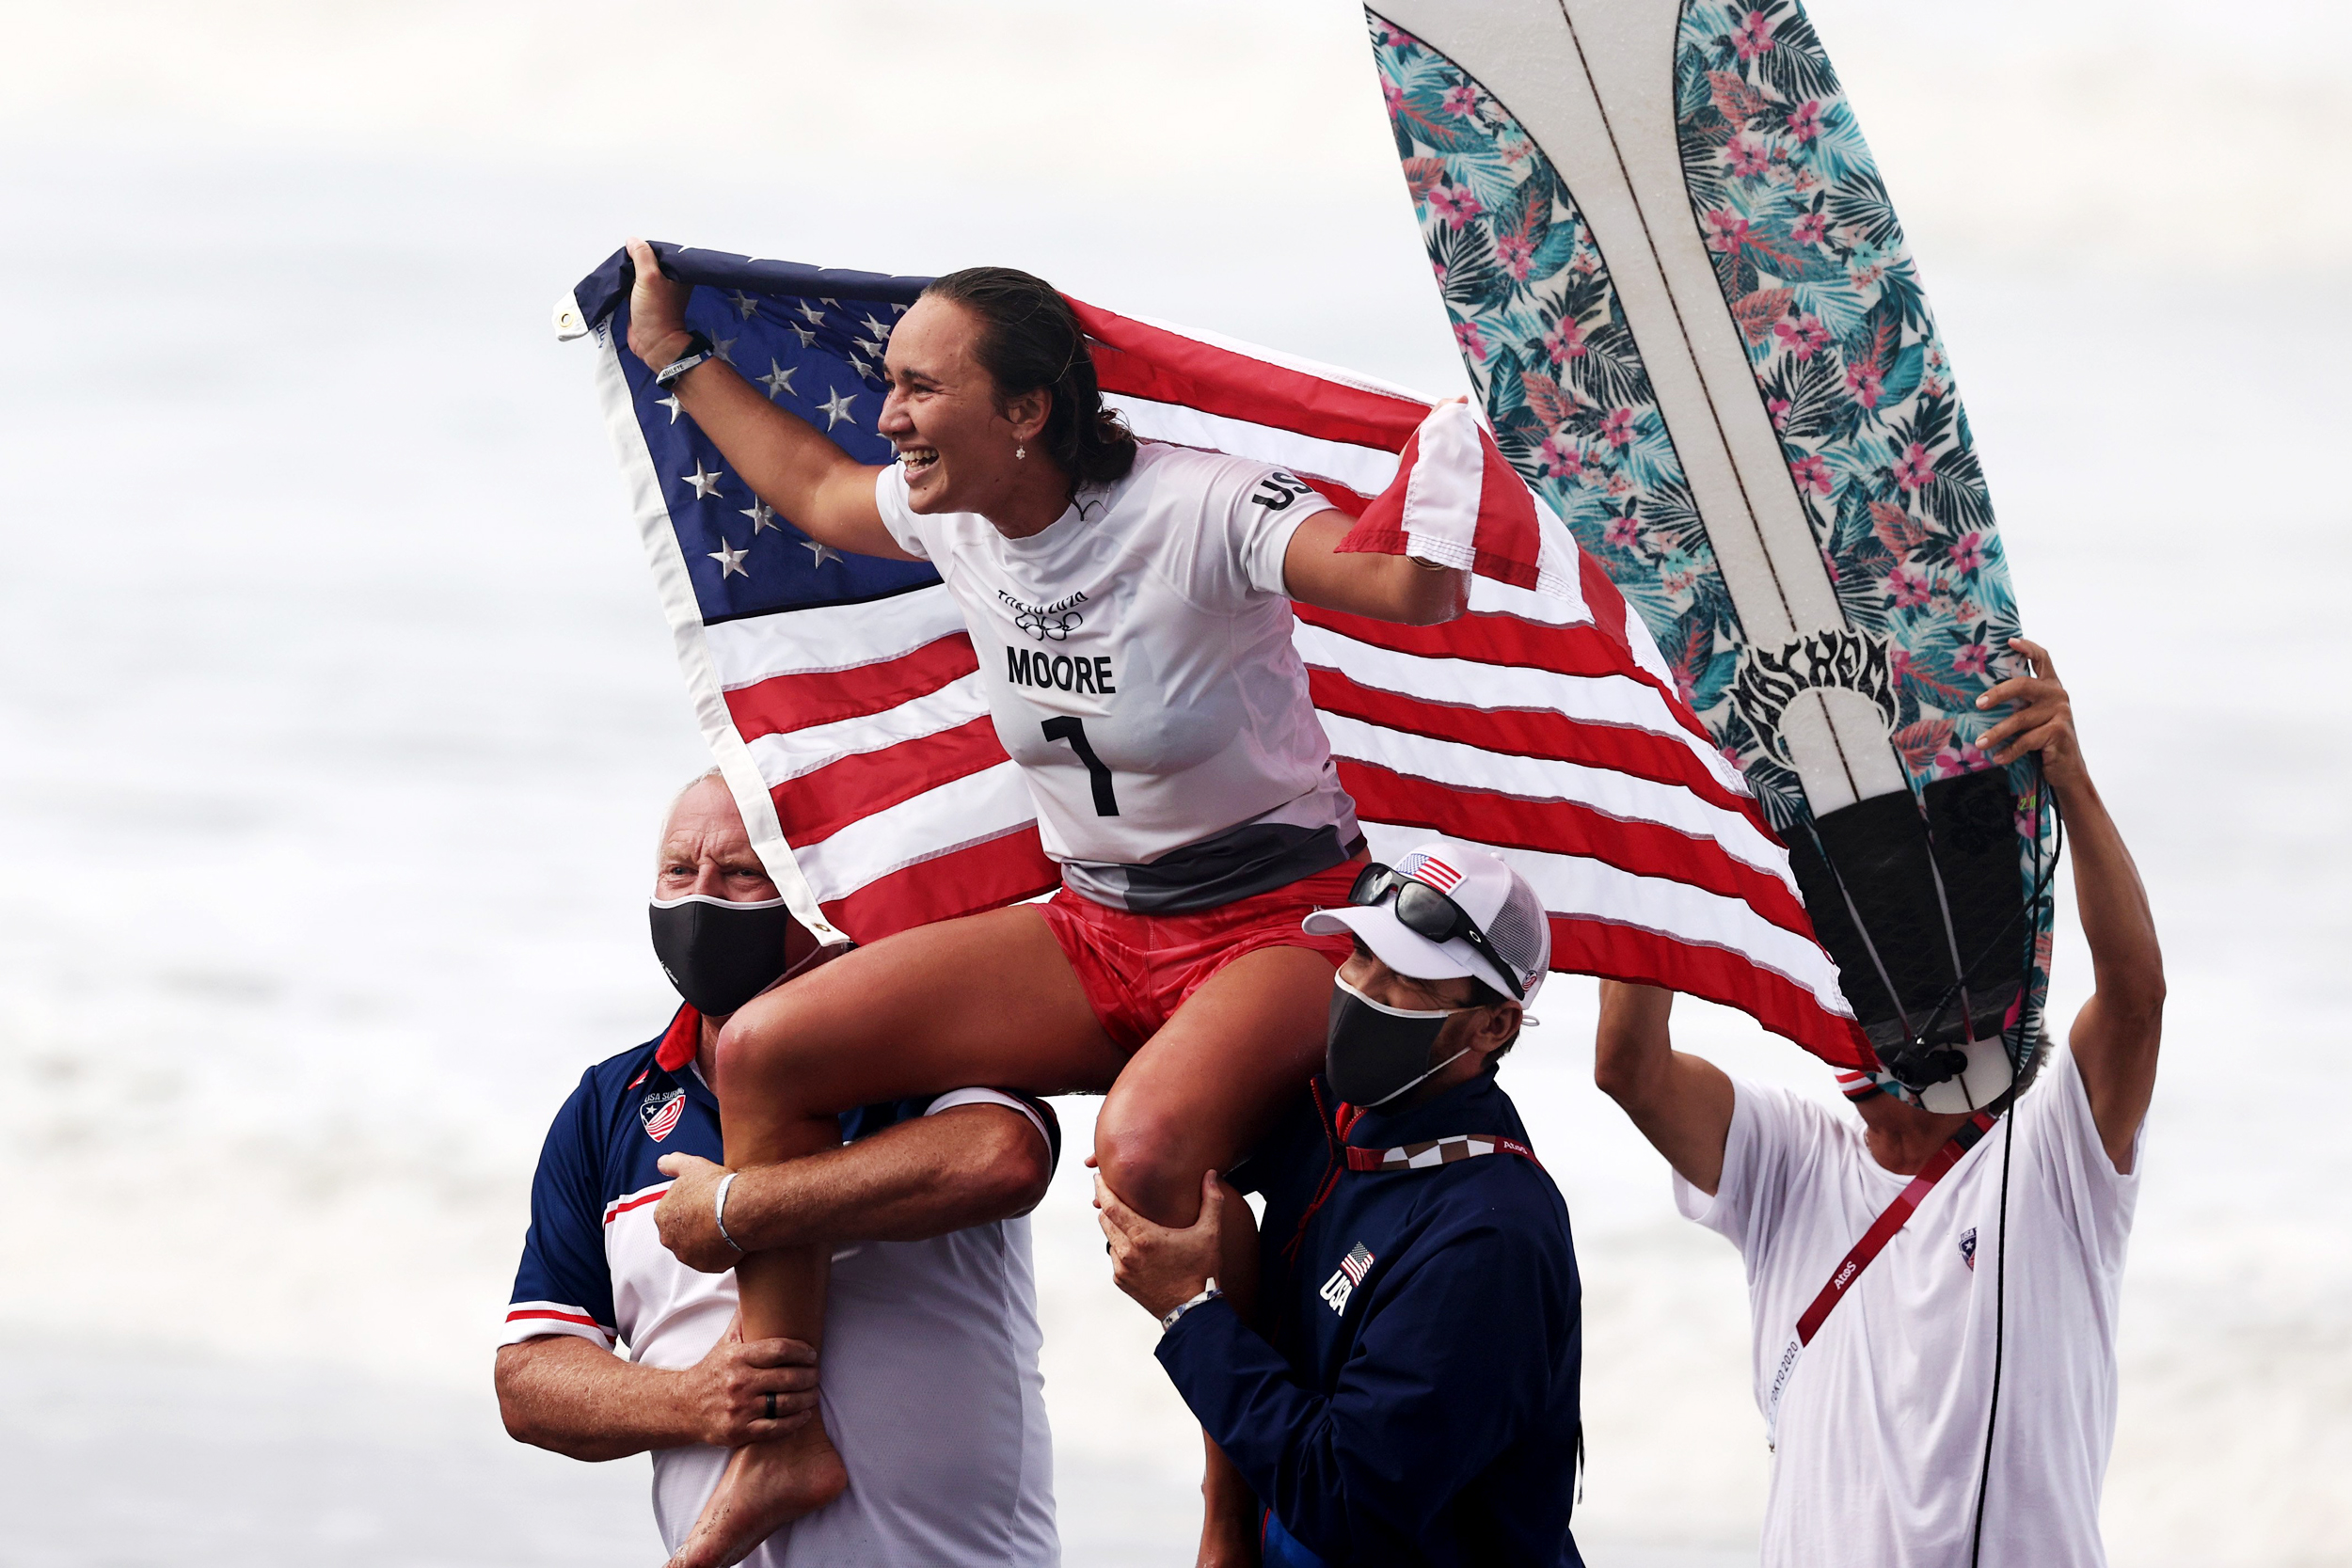 American Carissa Moore makes history by winning surfing gold